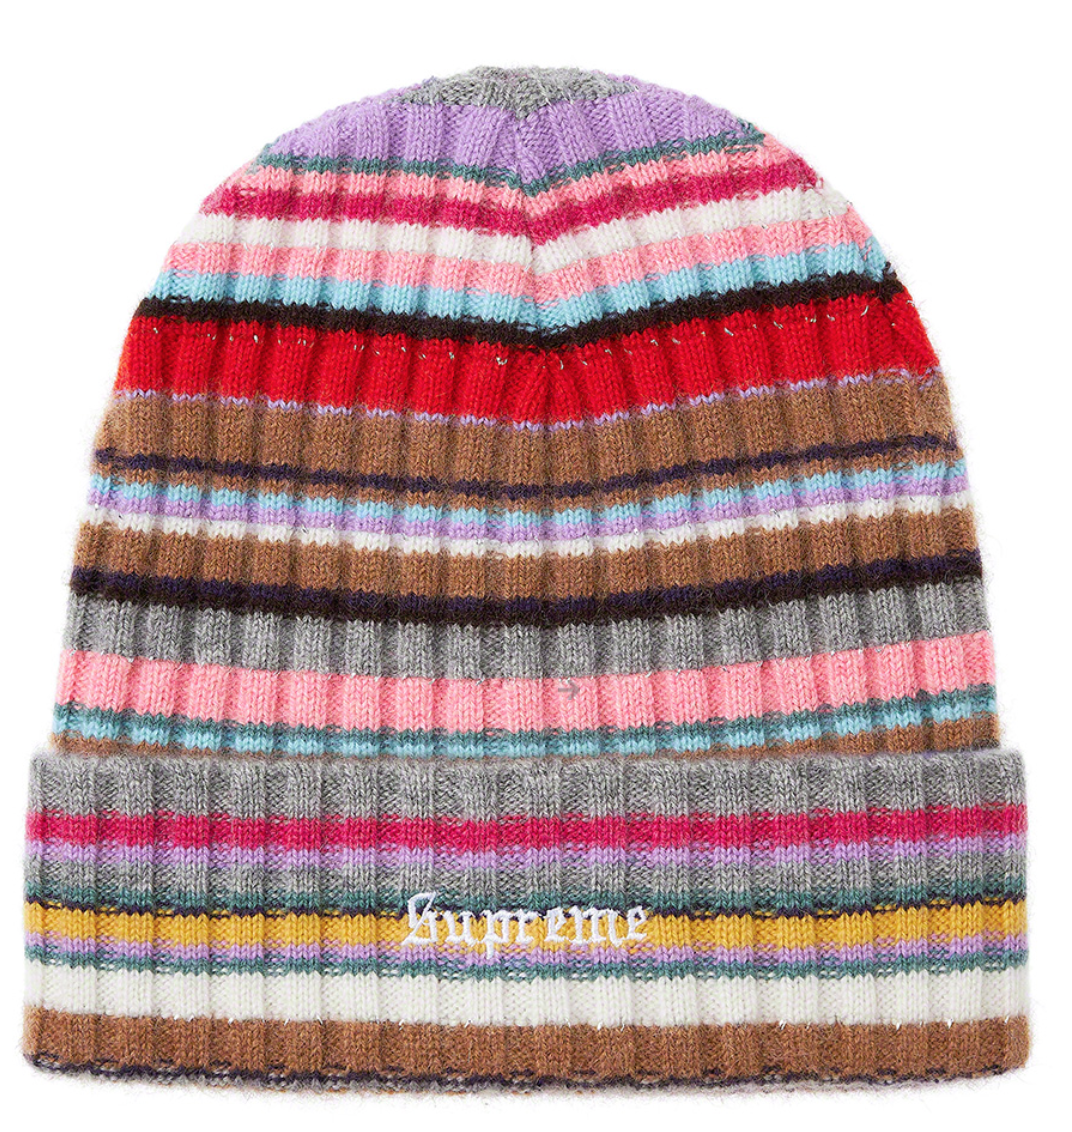 Cashmere Beanie - Who doesn't want to wrap their head in rainbow colored cashmere!?